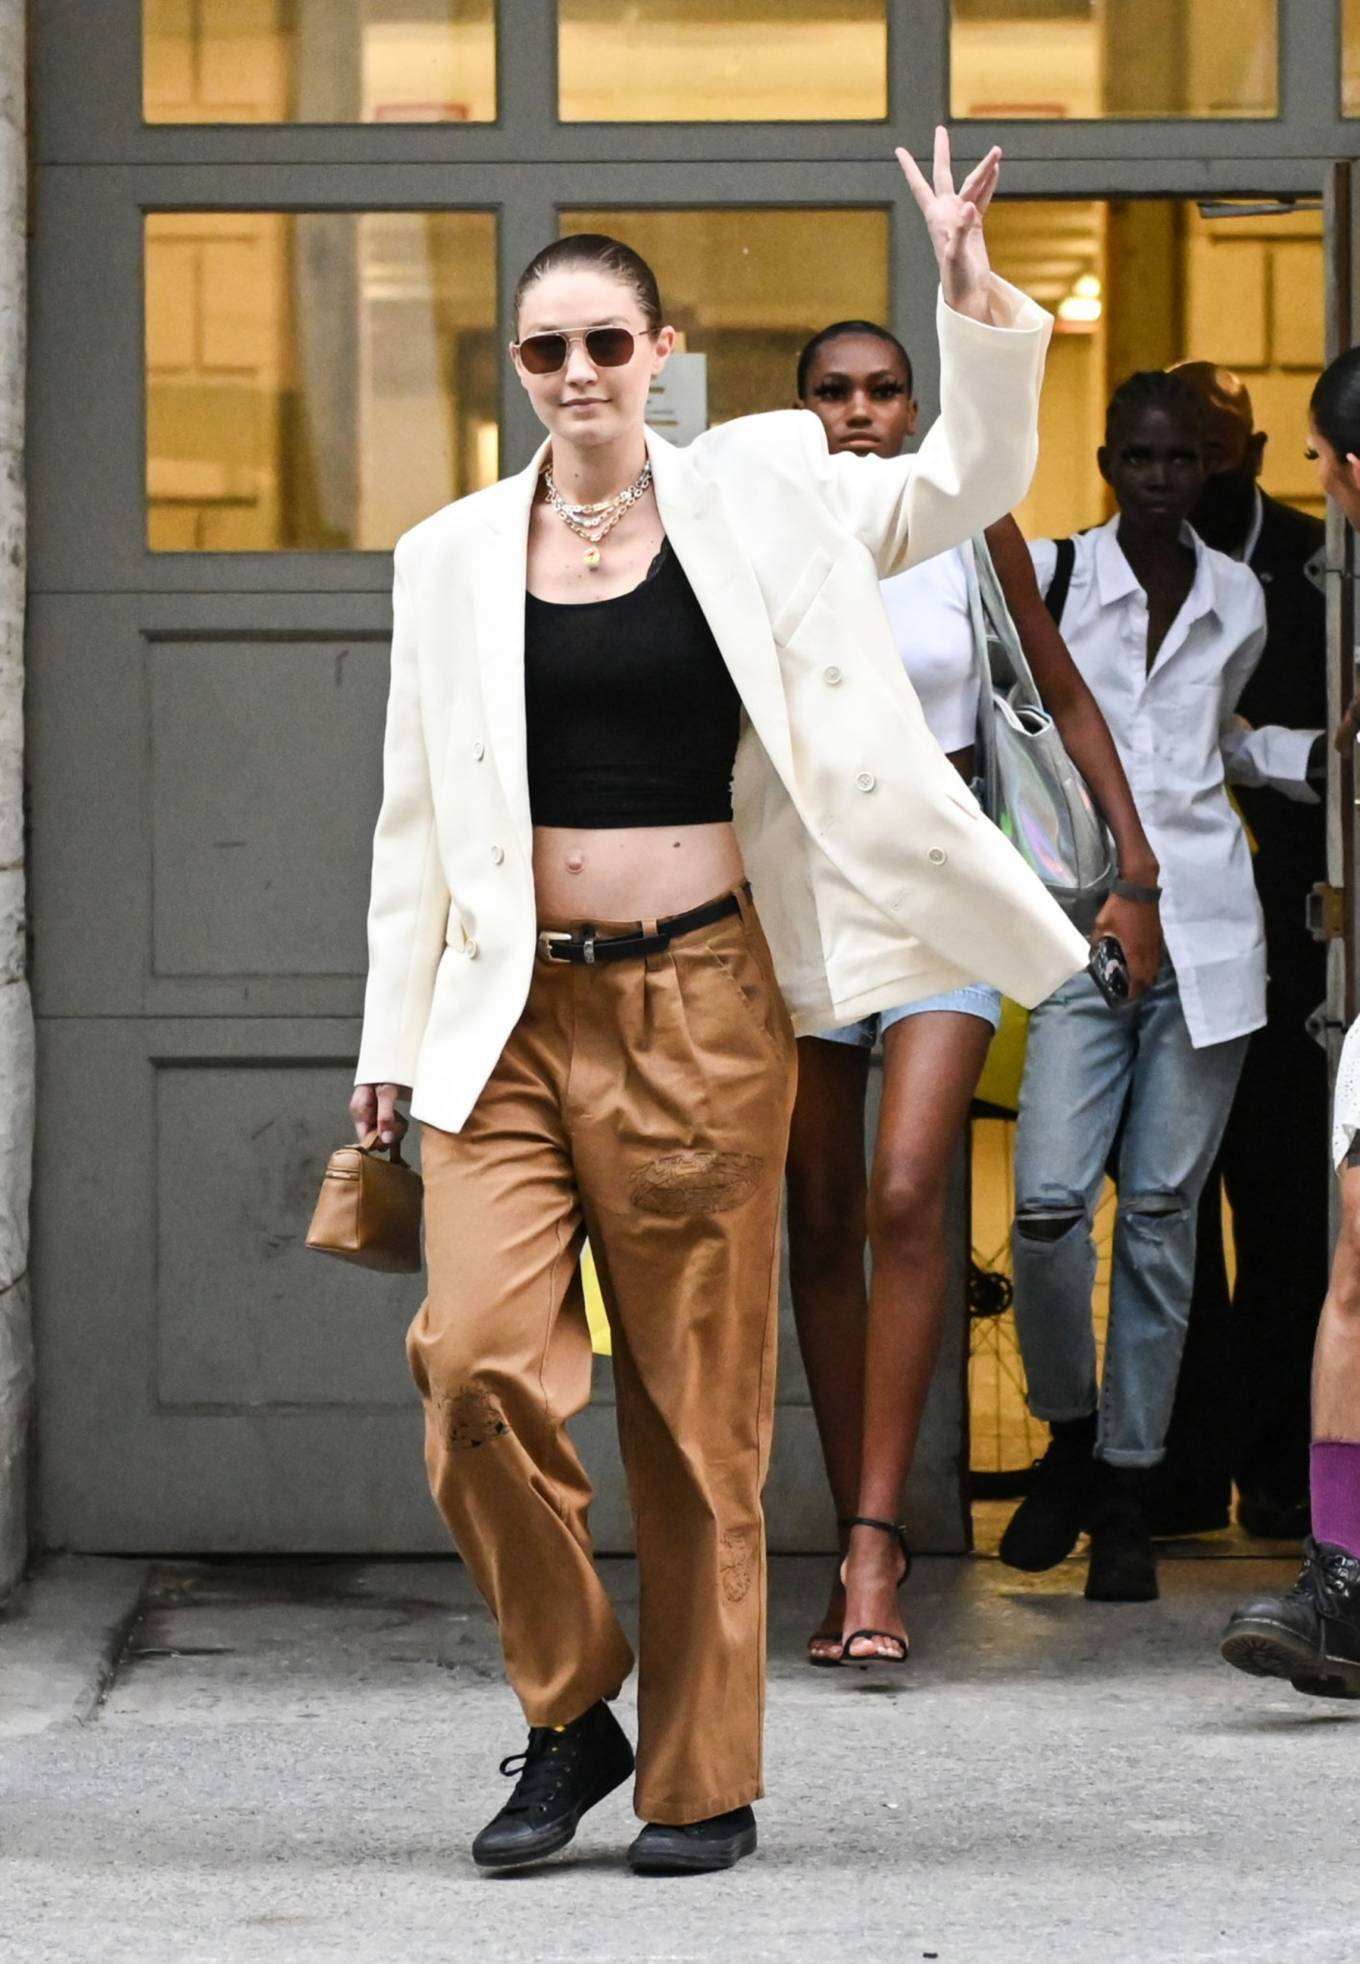 Gigi Hadid donning brand logo black Converse lace-up canvas shoes with flat heel